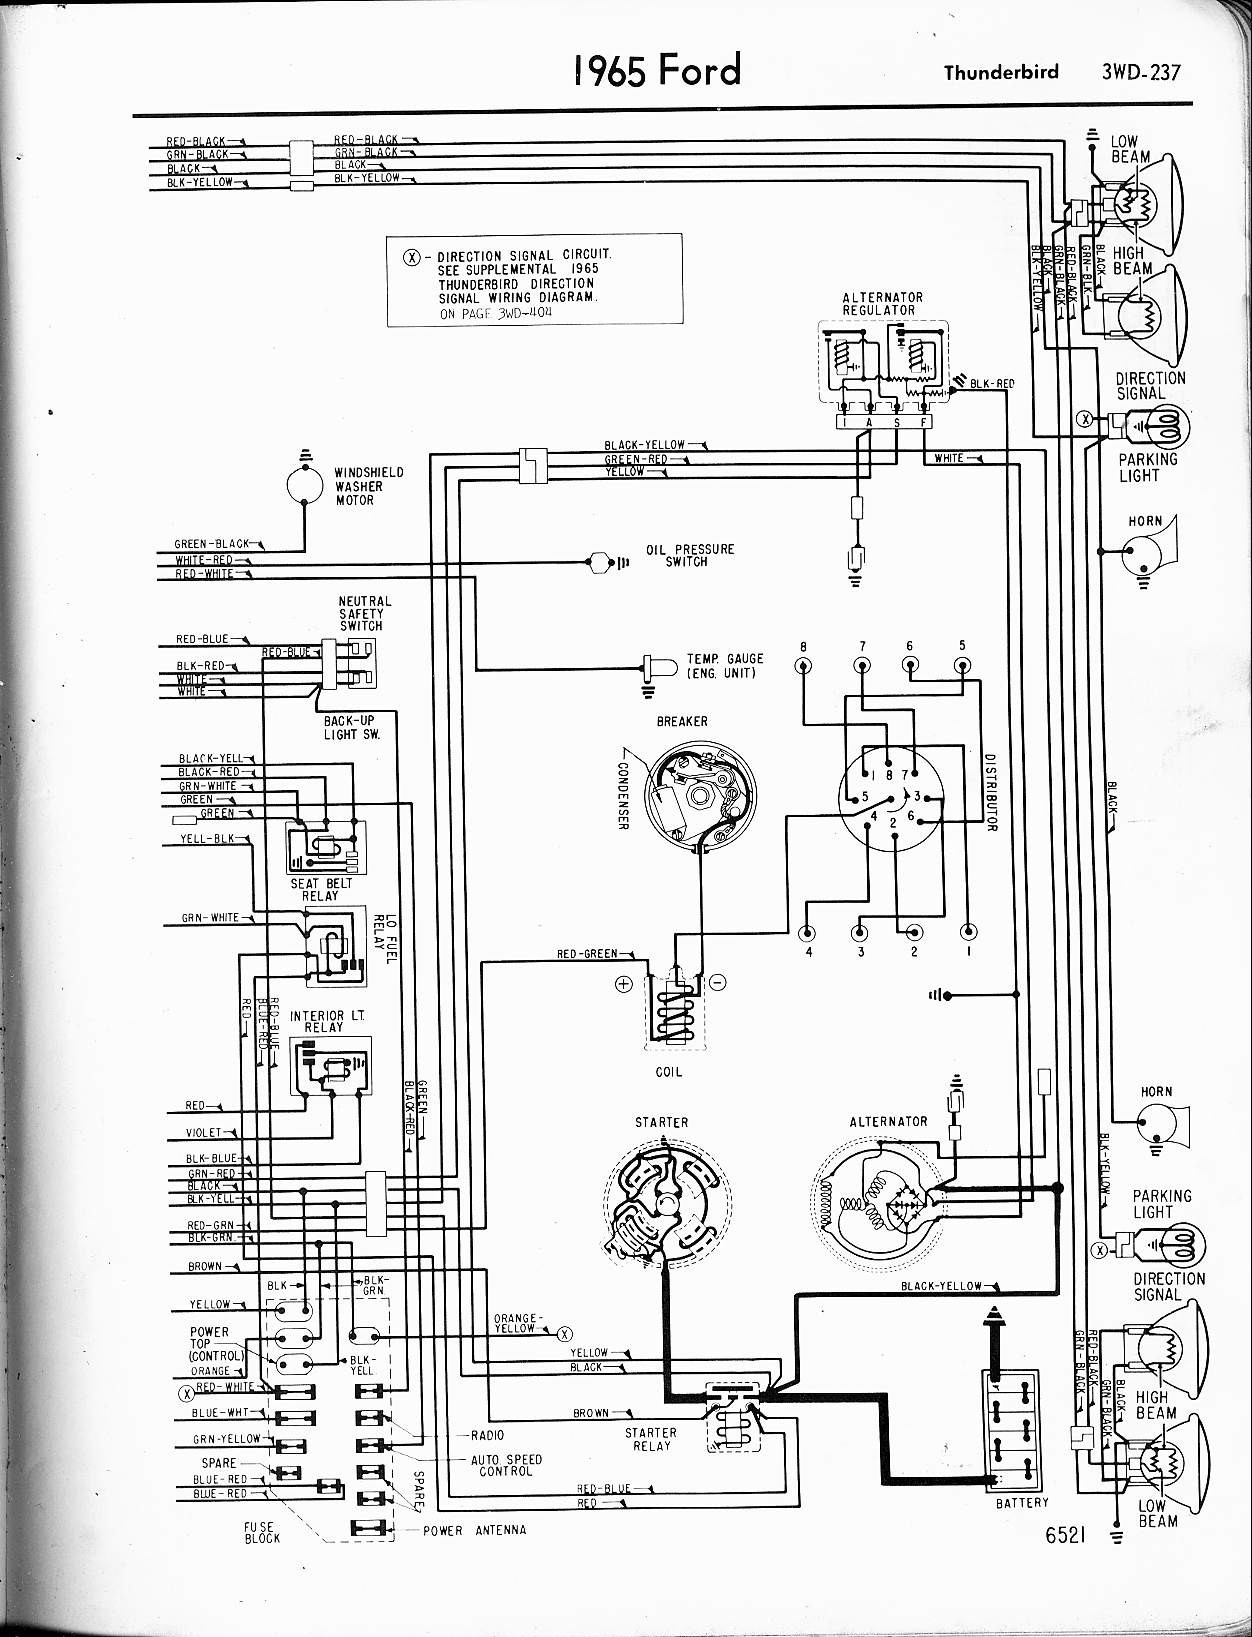 Mazda B3000 Engine Diagram My Wiring Ford Econoline Also 1966 Thunderbird Of